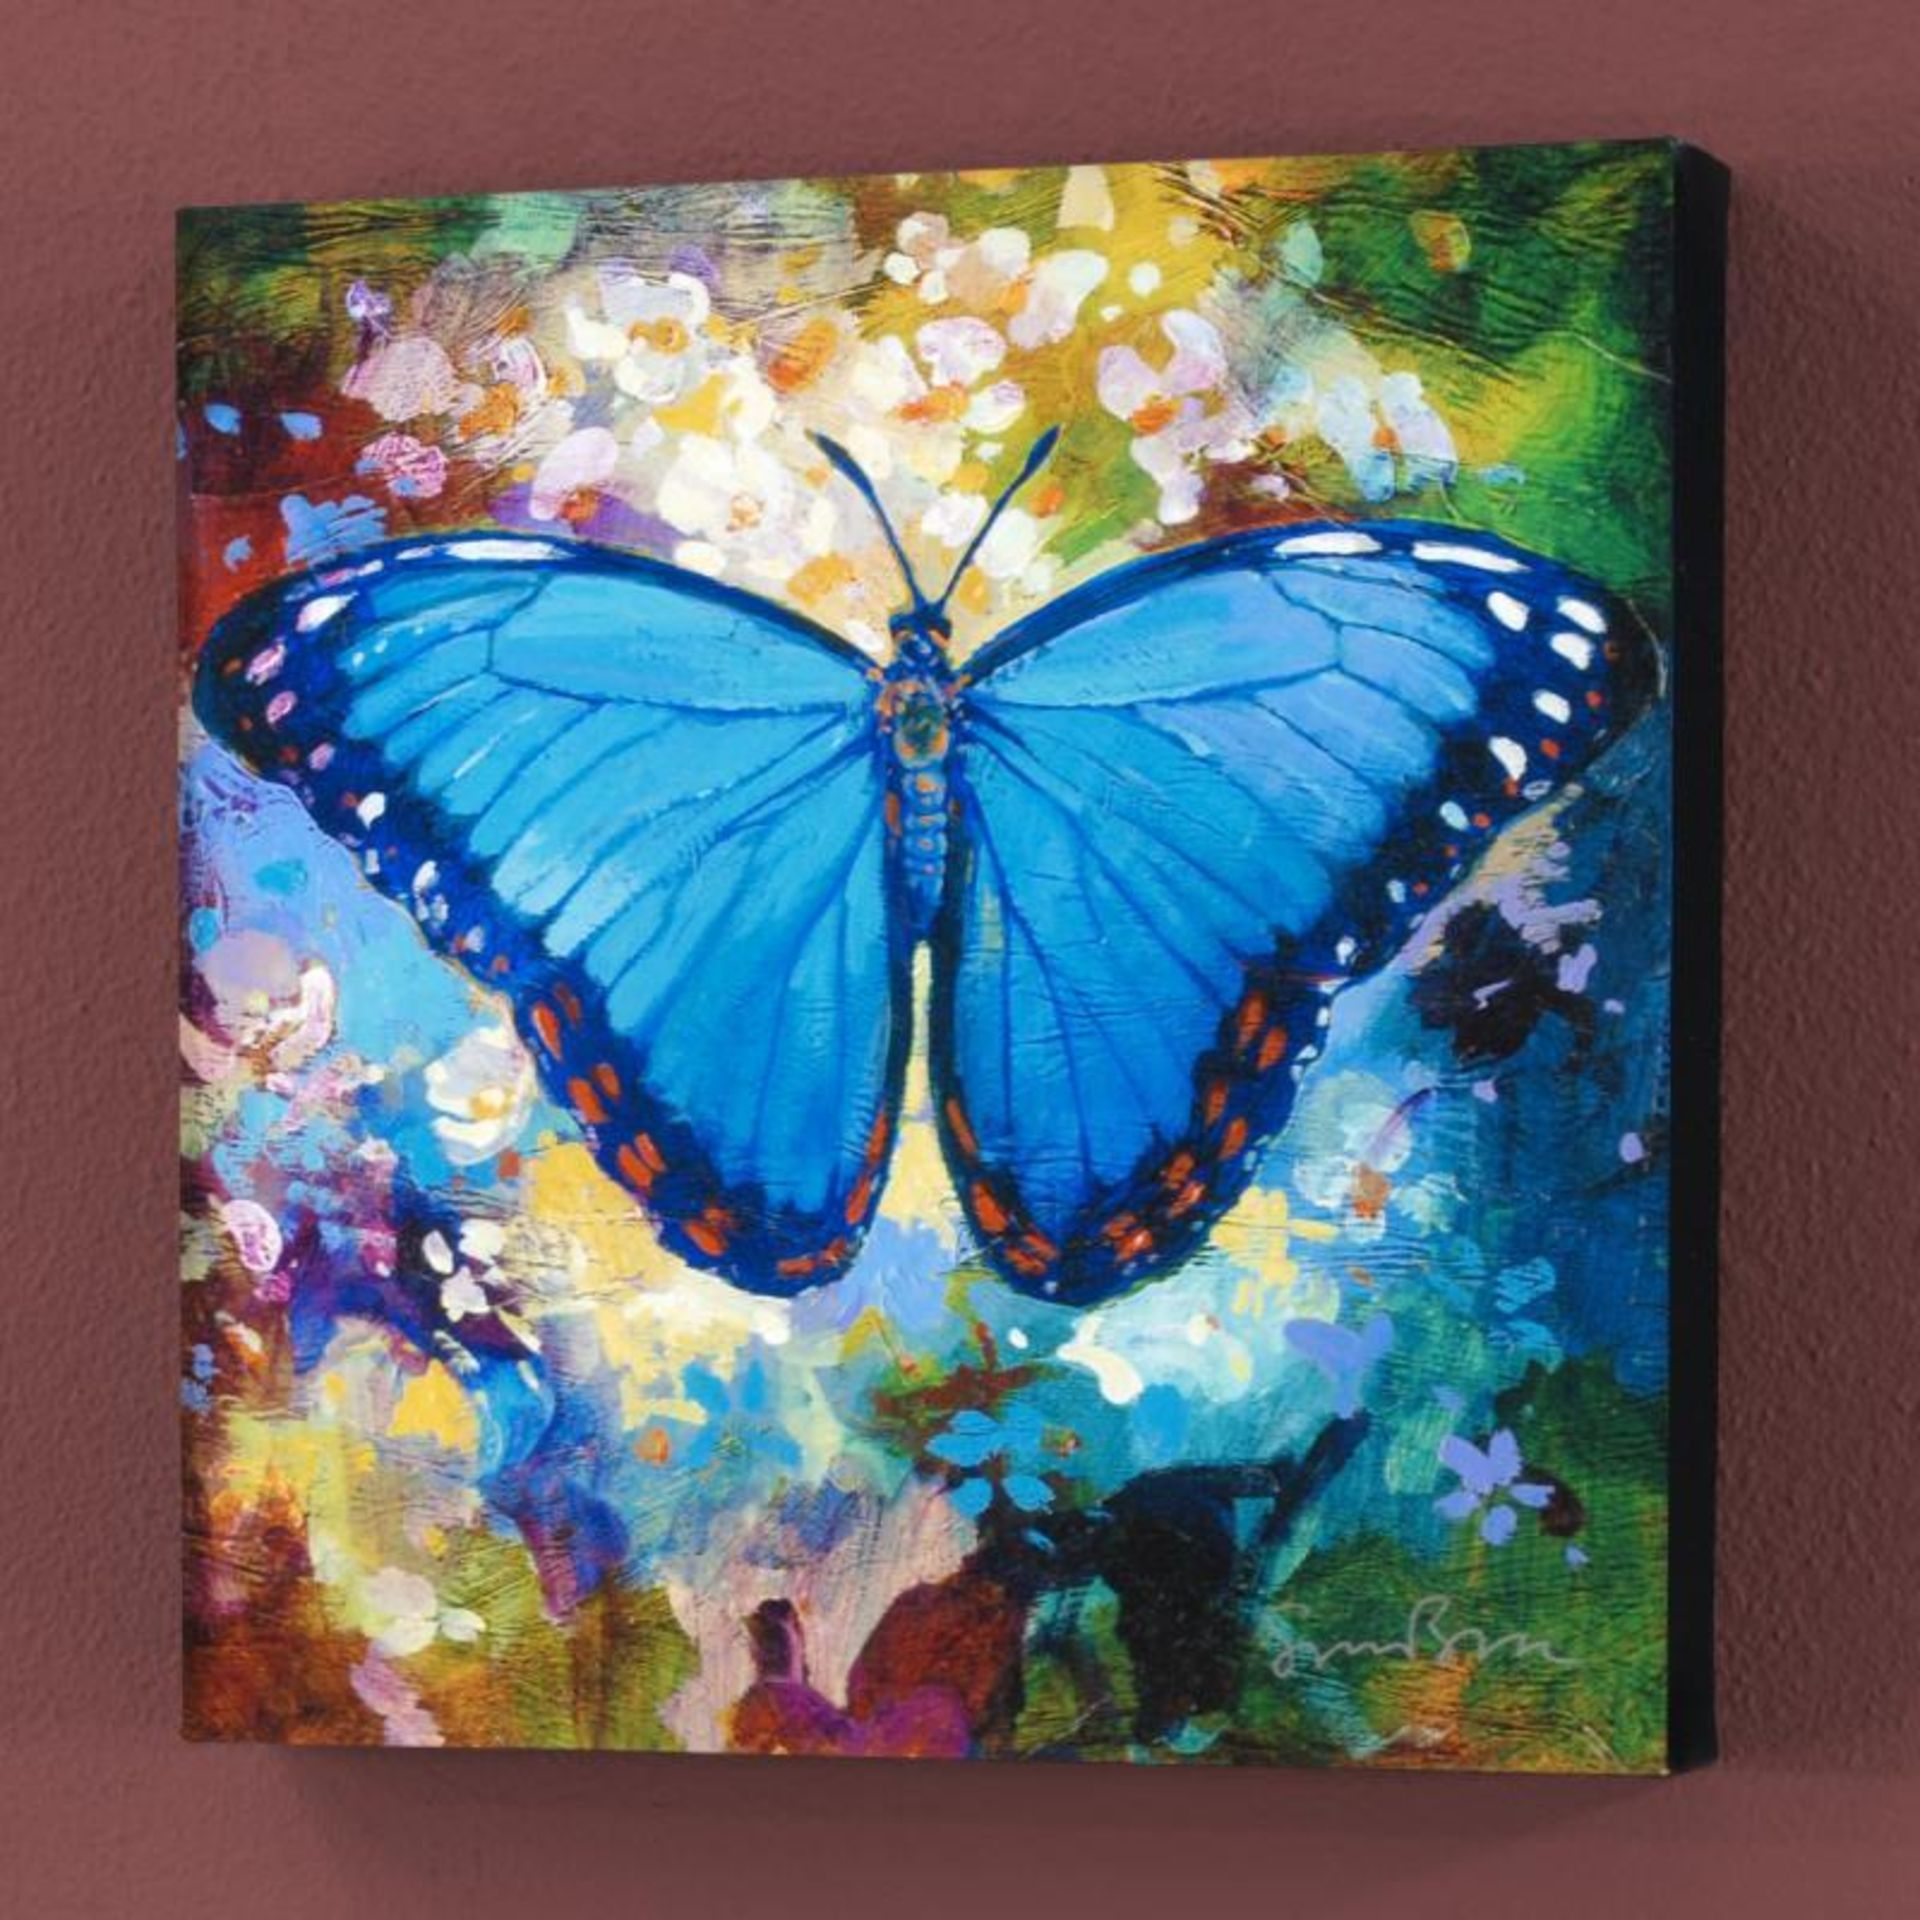 """Blue Morpho"" Limited Edition Giclee on Canvas by Simon Bull, Numbered and Signe - Image 2 of 2"